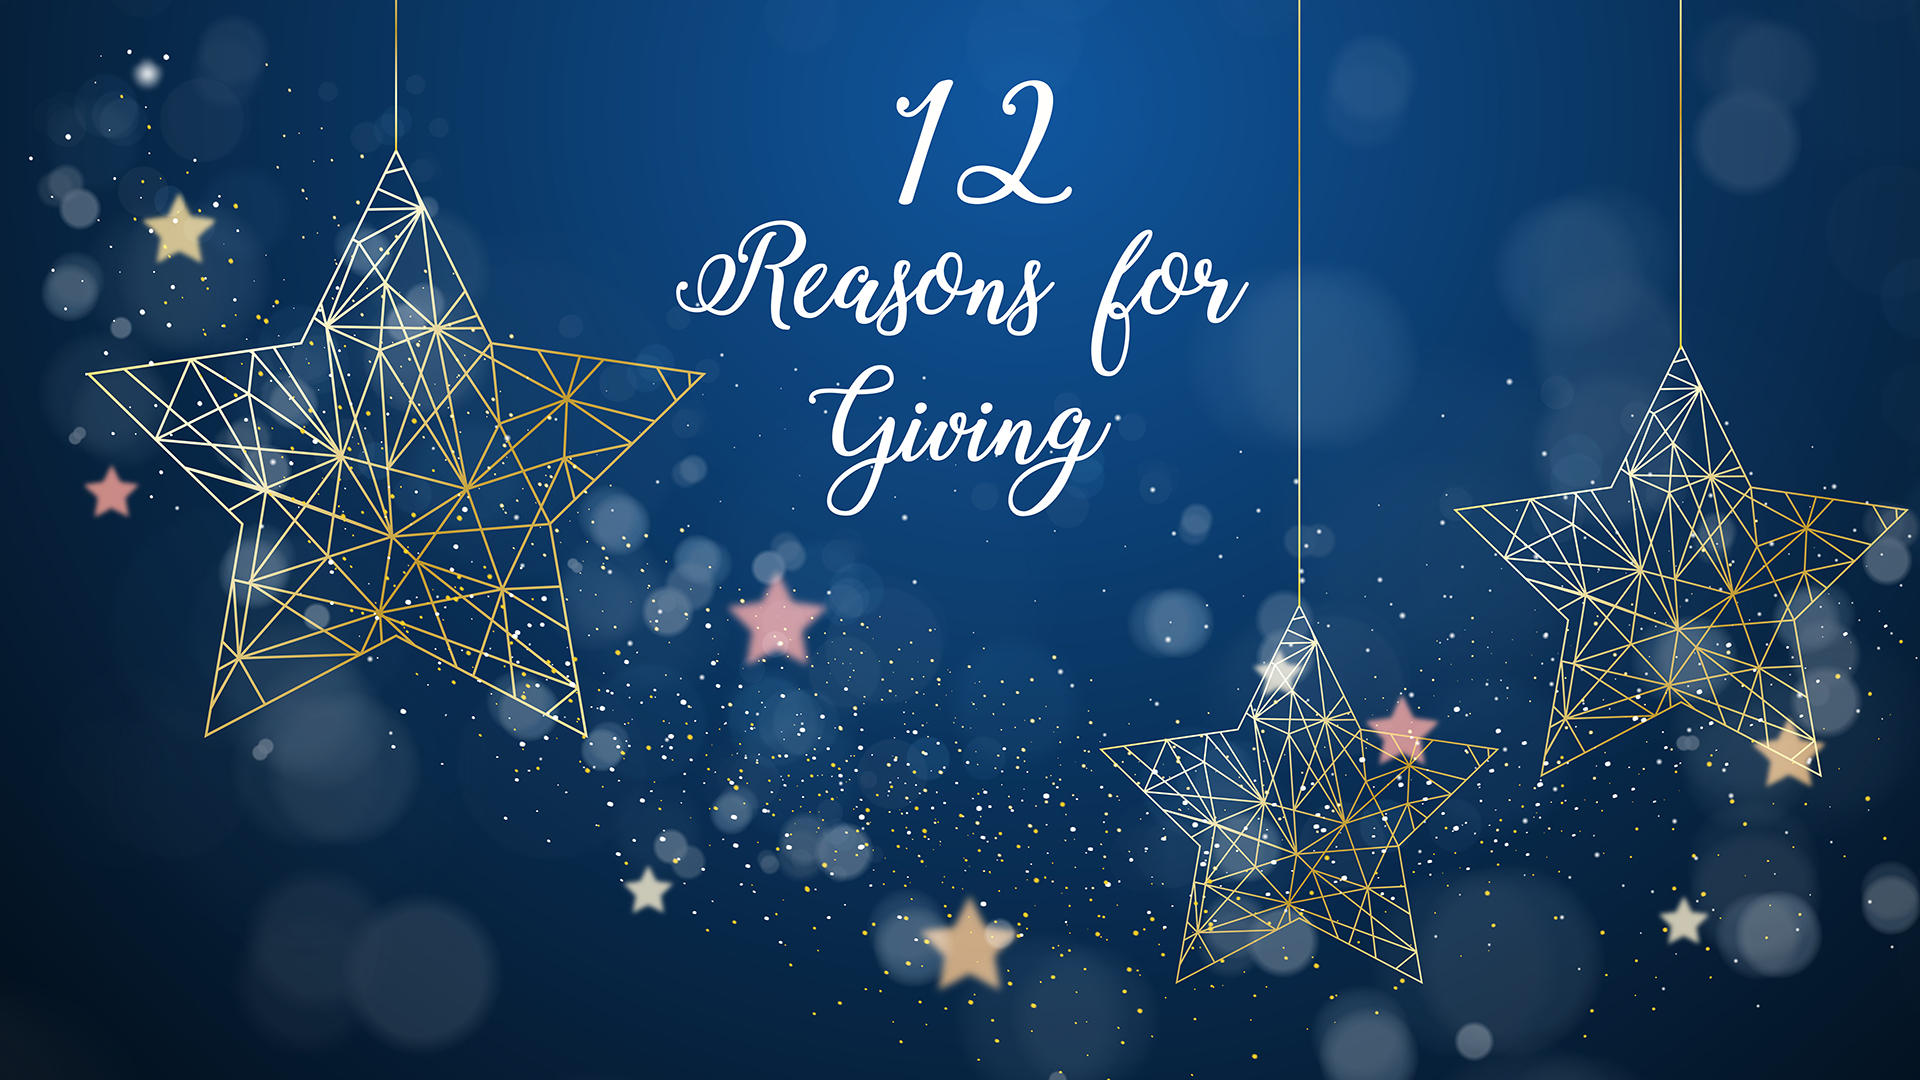 12 reasons for giving